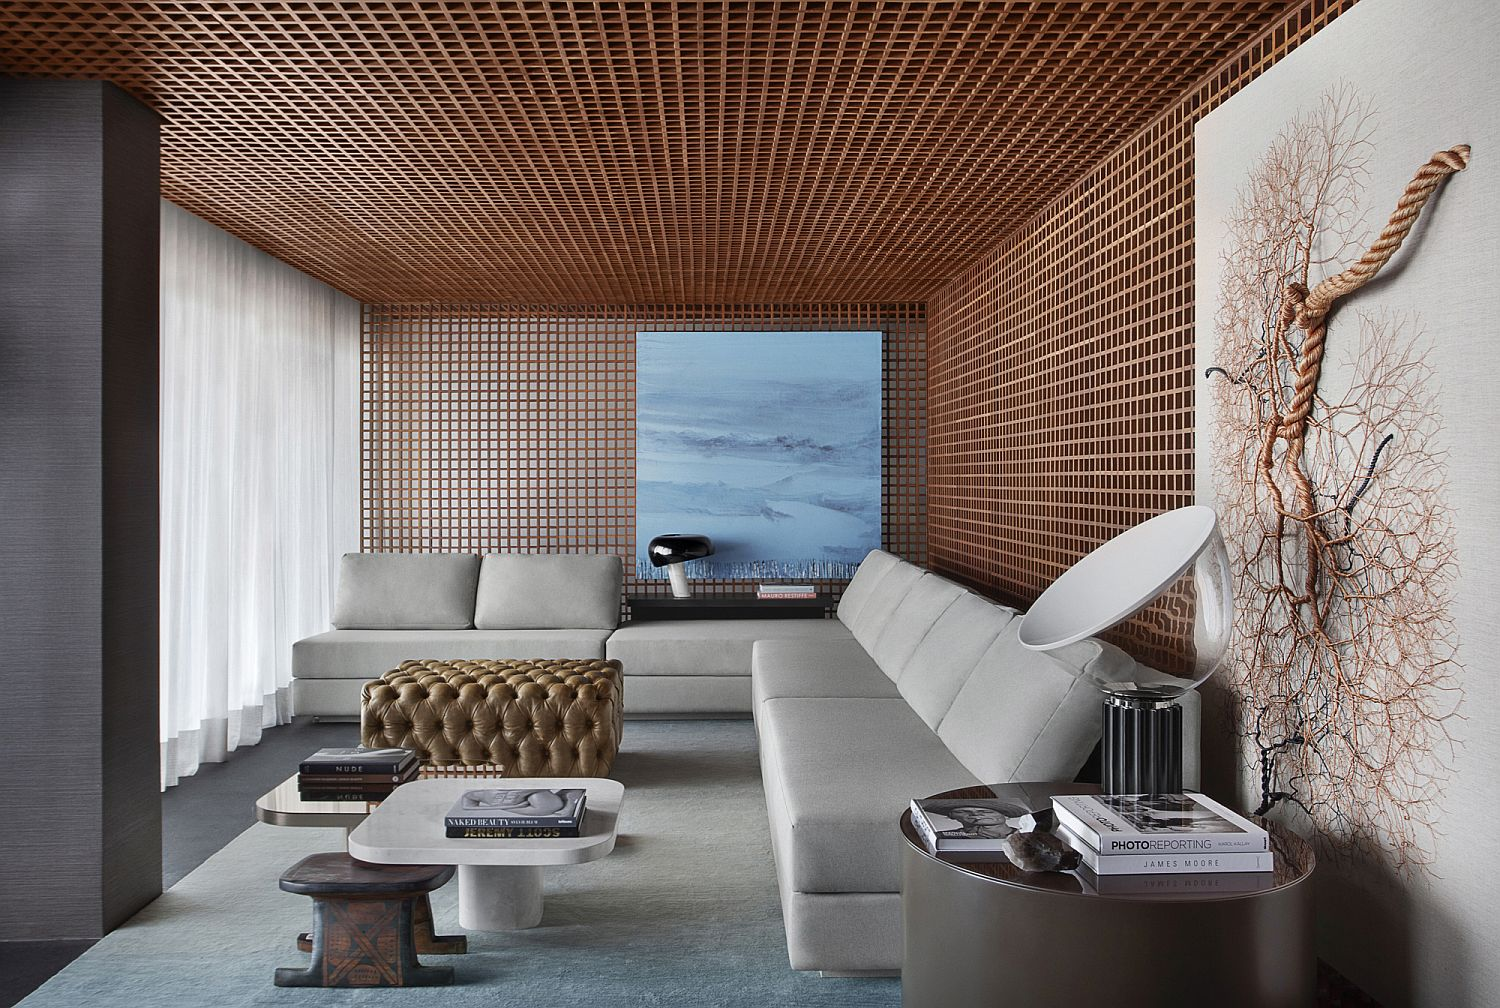 Grid-pattern-on-the-ceiling-and-walls-conceals-several-features-within